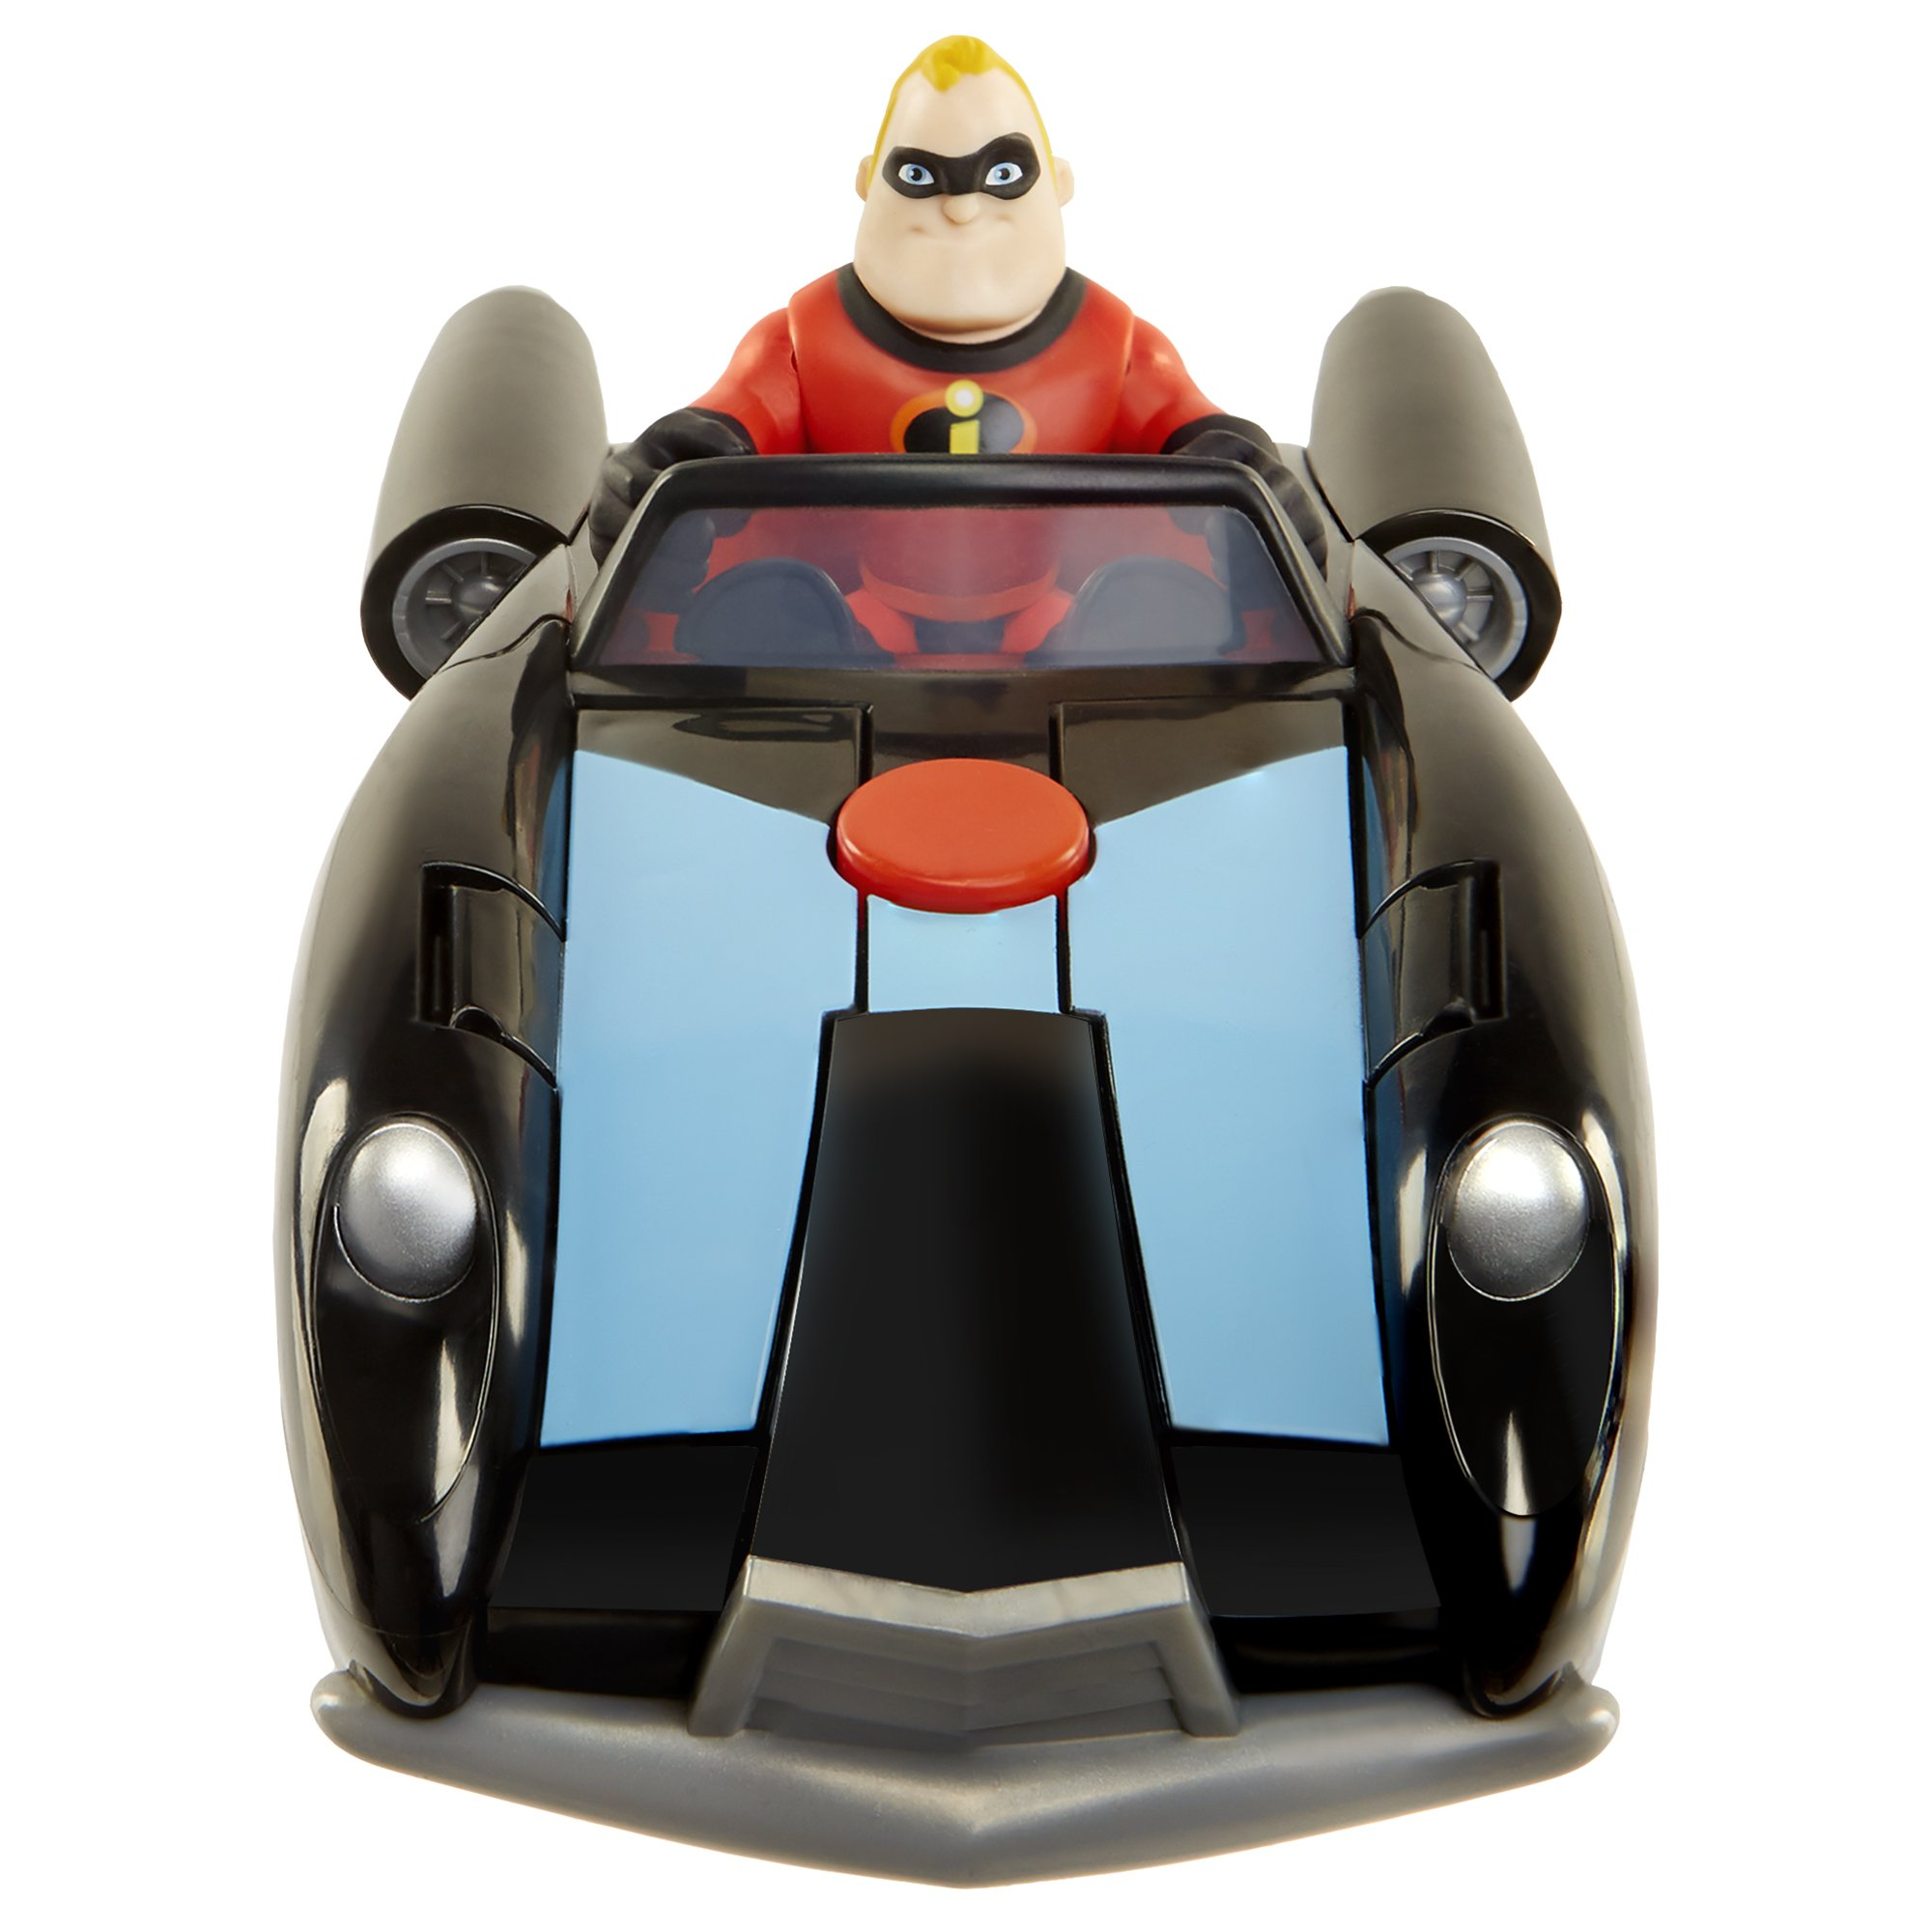 The Incredibles 2 Incredibile Car & Mr. Incredible Action Figure 2-Piece Set, Black Car and Red Mr. Incredible Figure, Medium by The Incredibles 2 (Image #2)